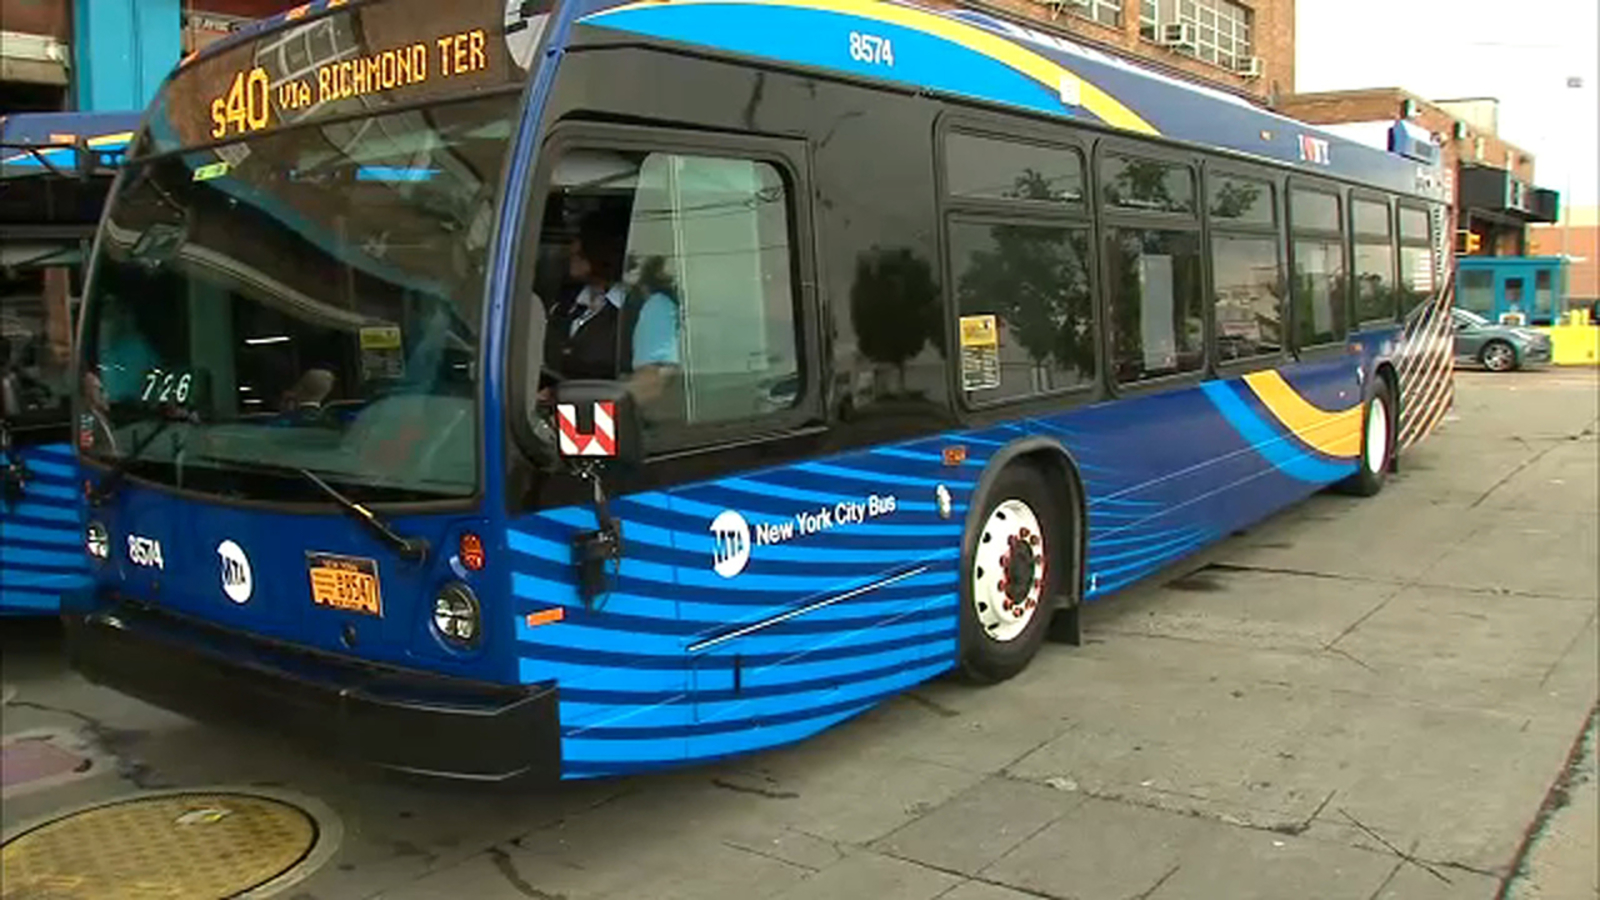 Fleet of new state-of-the-art buses rolled out on Staten Island